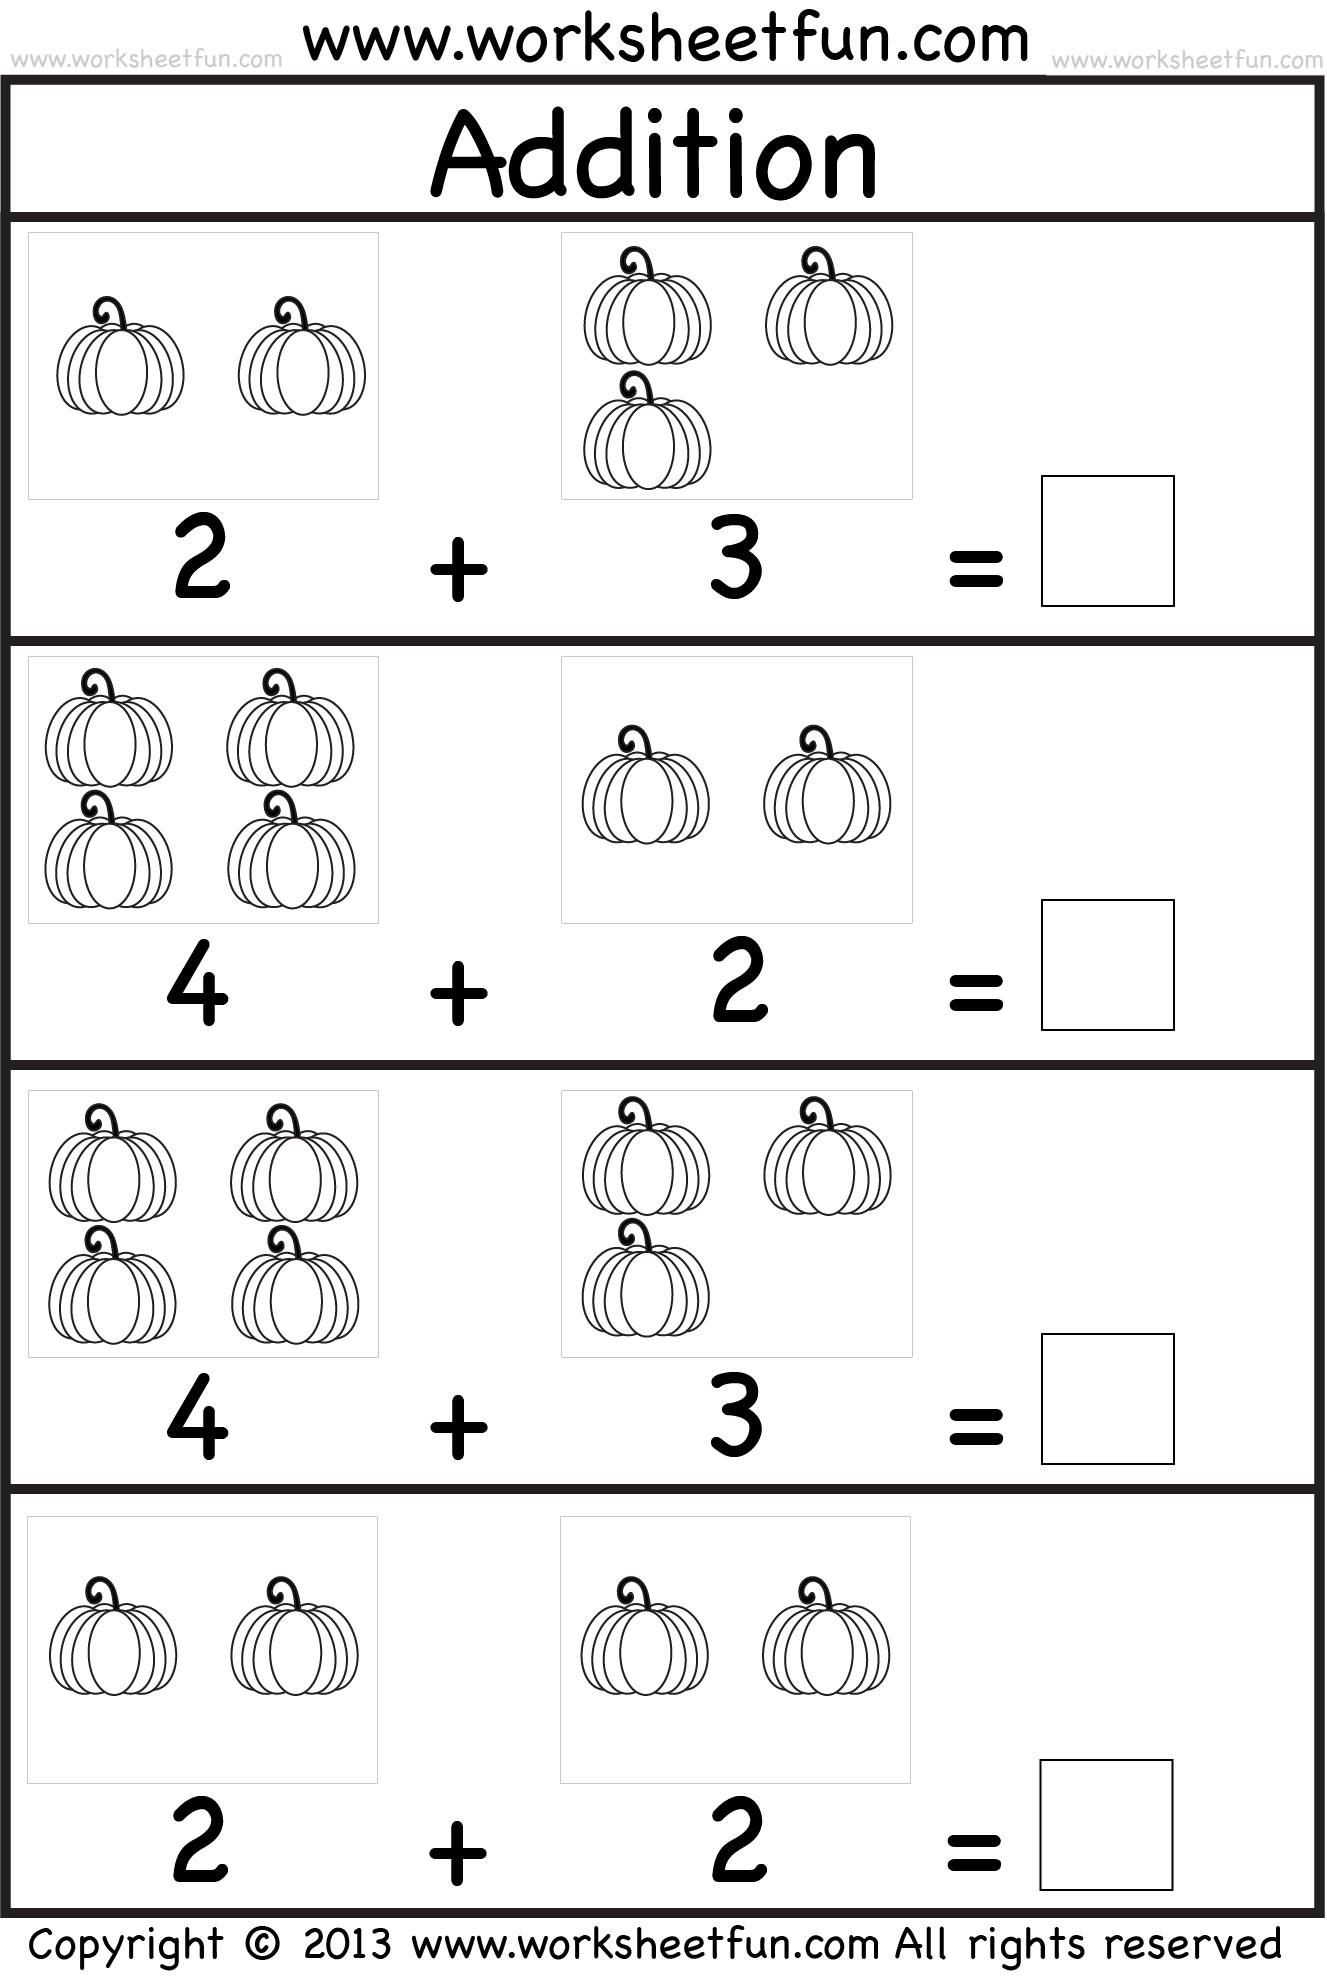 Worksheet Kindergarten Worksheets Addition adding numbers worksheets kindergarten k5 learning addition worksheet for printable